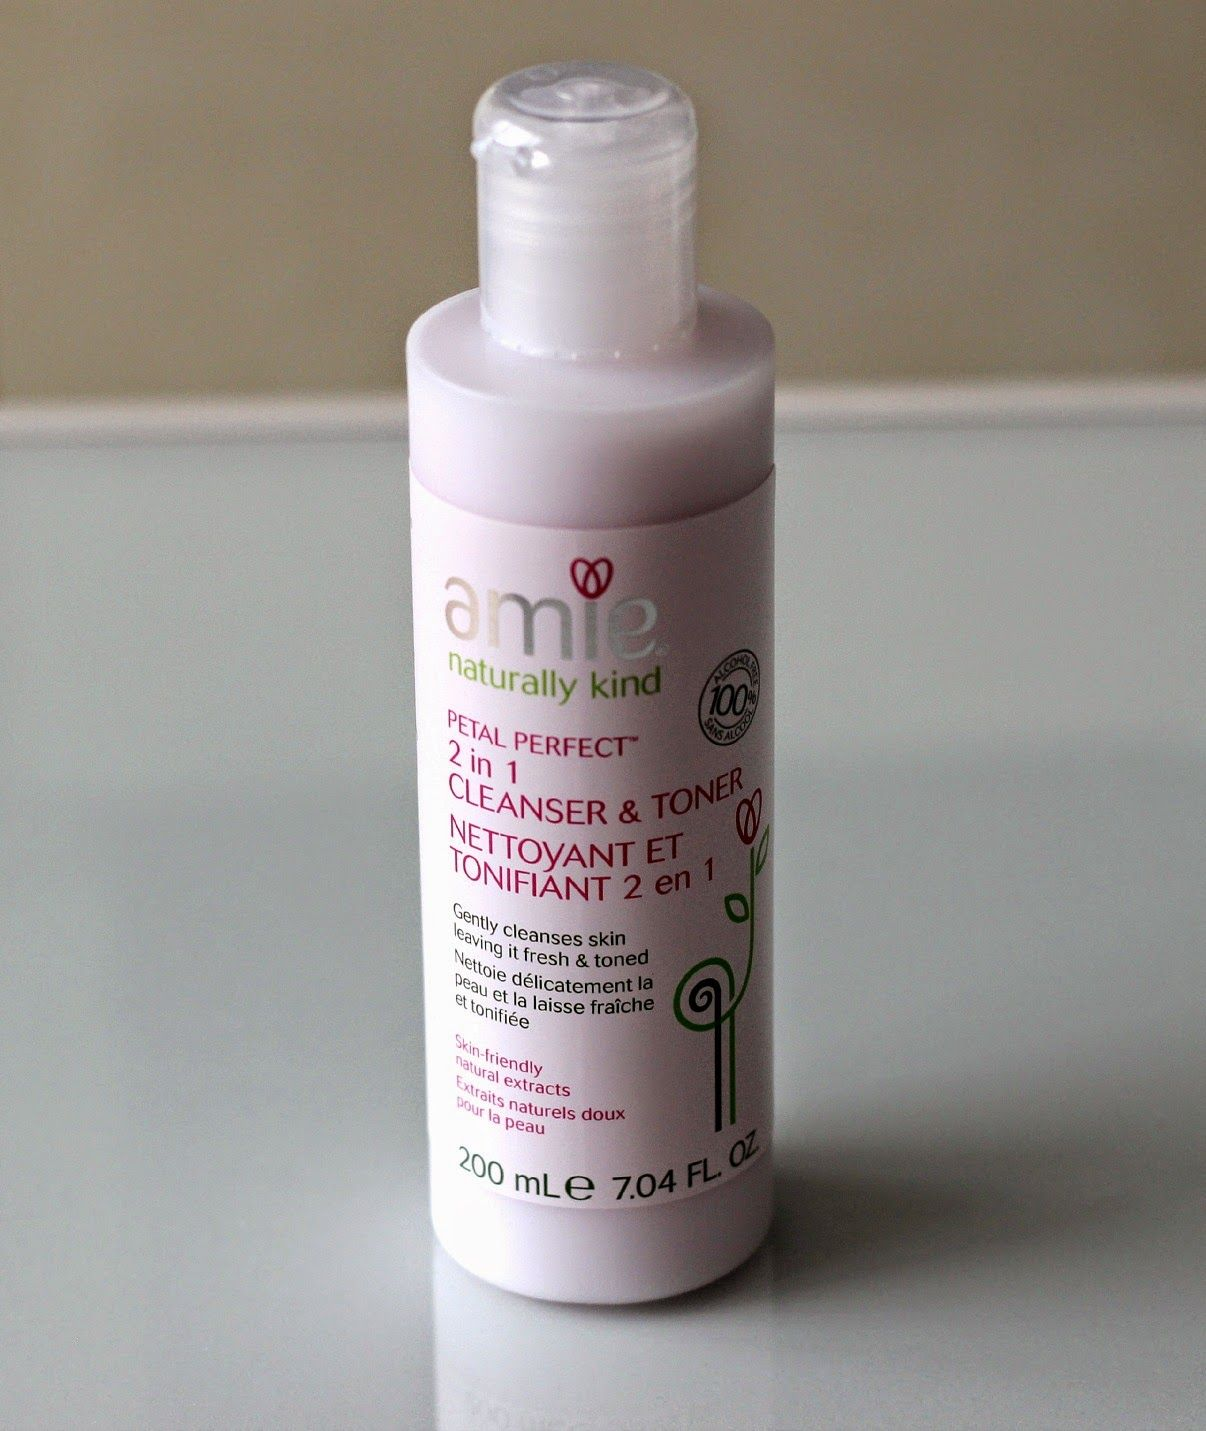 Natalie Loves Beauty: Amie Petal Perfect 2 in 1 Cleanser and Toner | Review